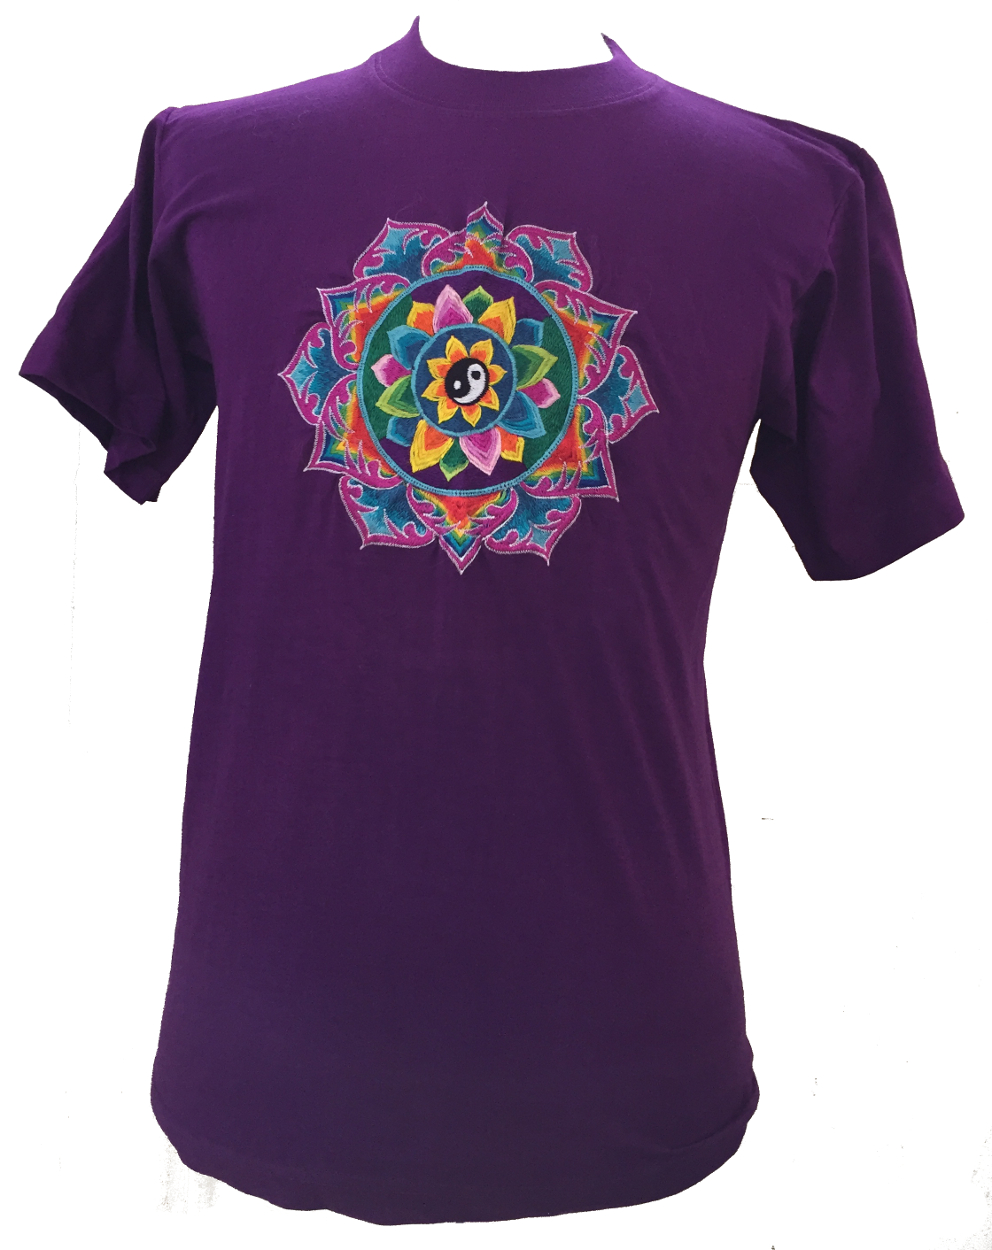 Fair trade embroidered yin yang mandala t shirt purple